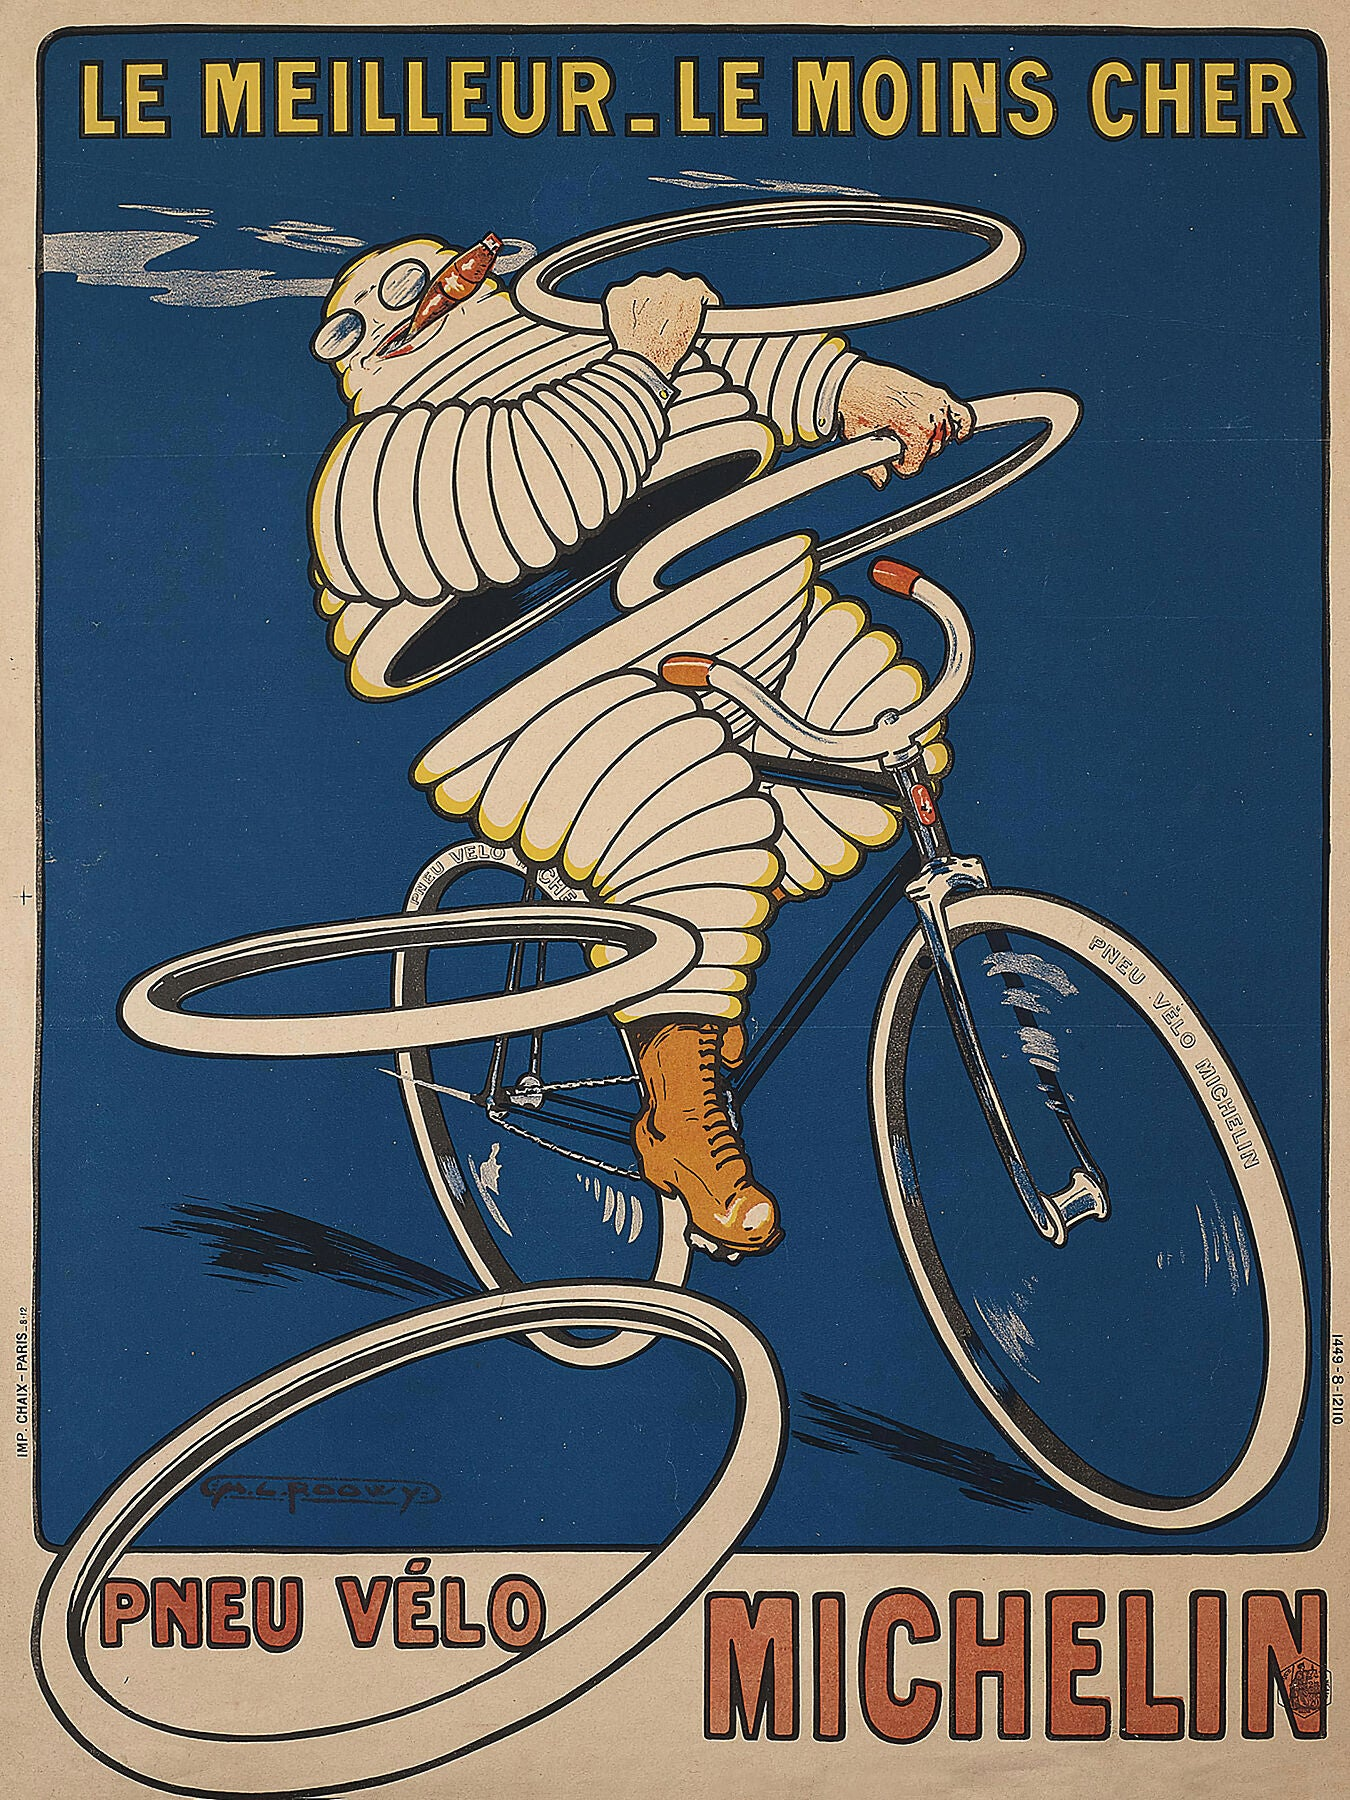 Pneu Velo Michelin by O'Galop - 1912